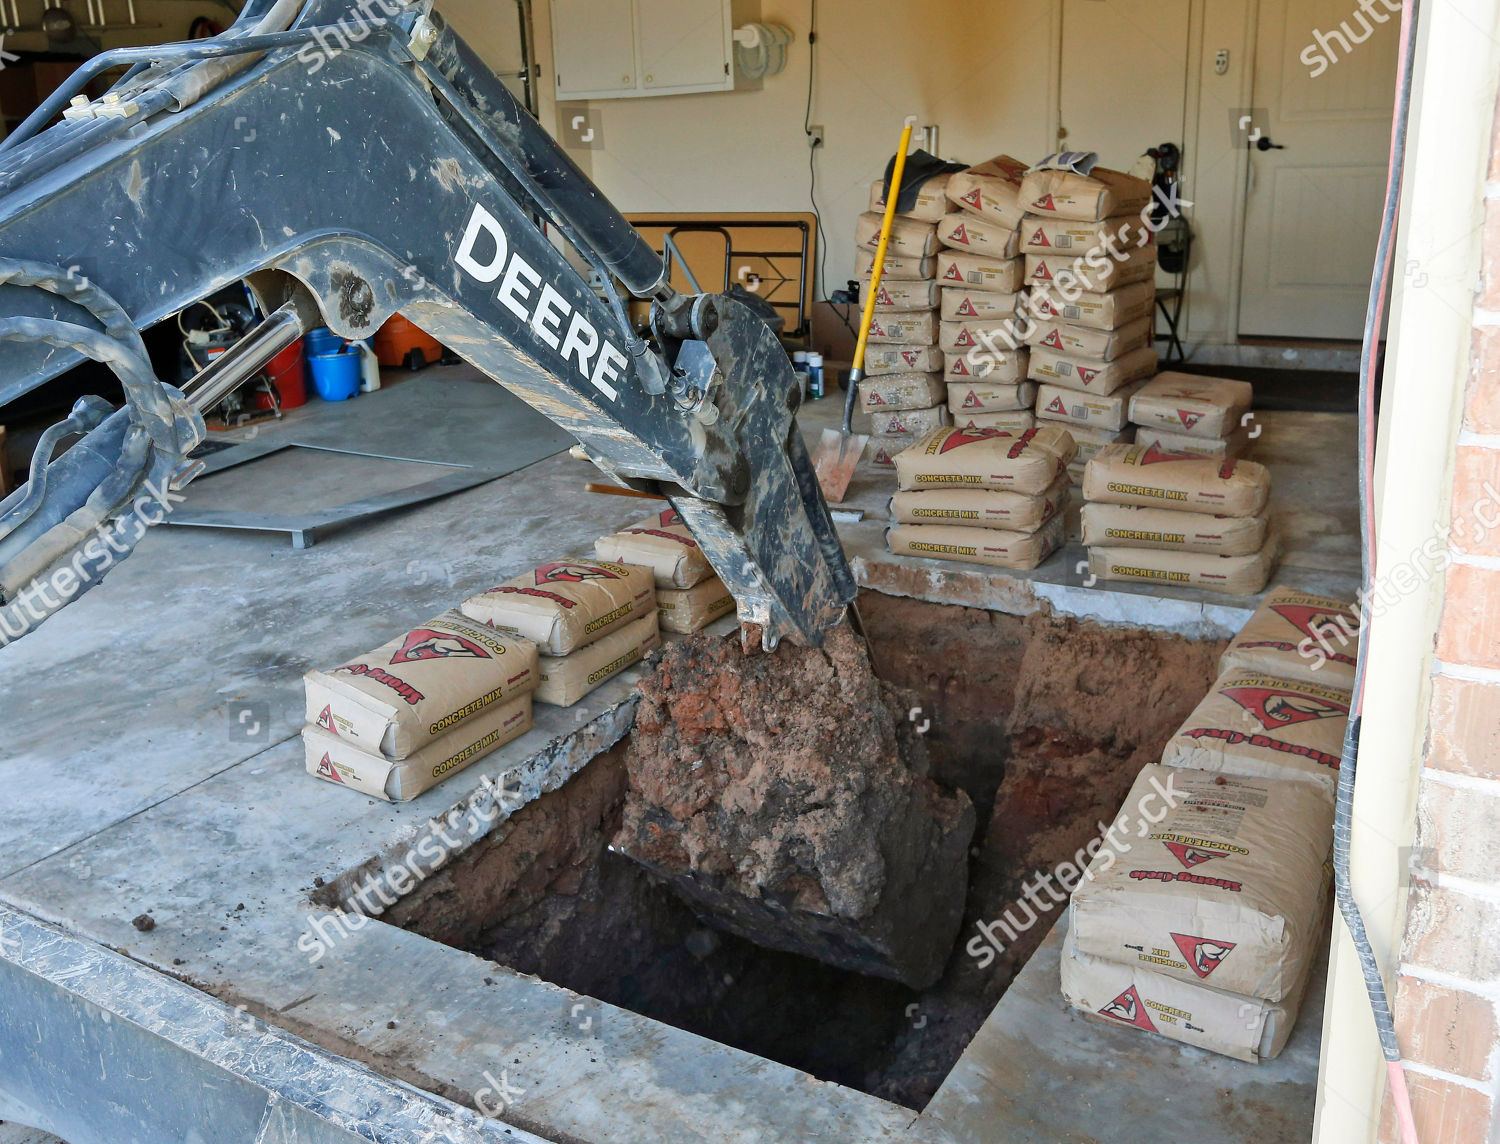 Shelter From Storm With Devices >> Equipment Used Dig Hole Storm Shelter By Editorial Stock Photo